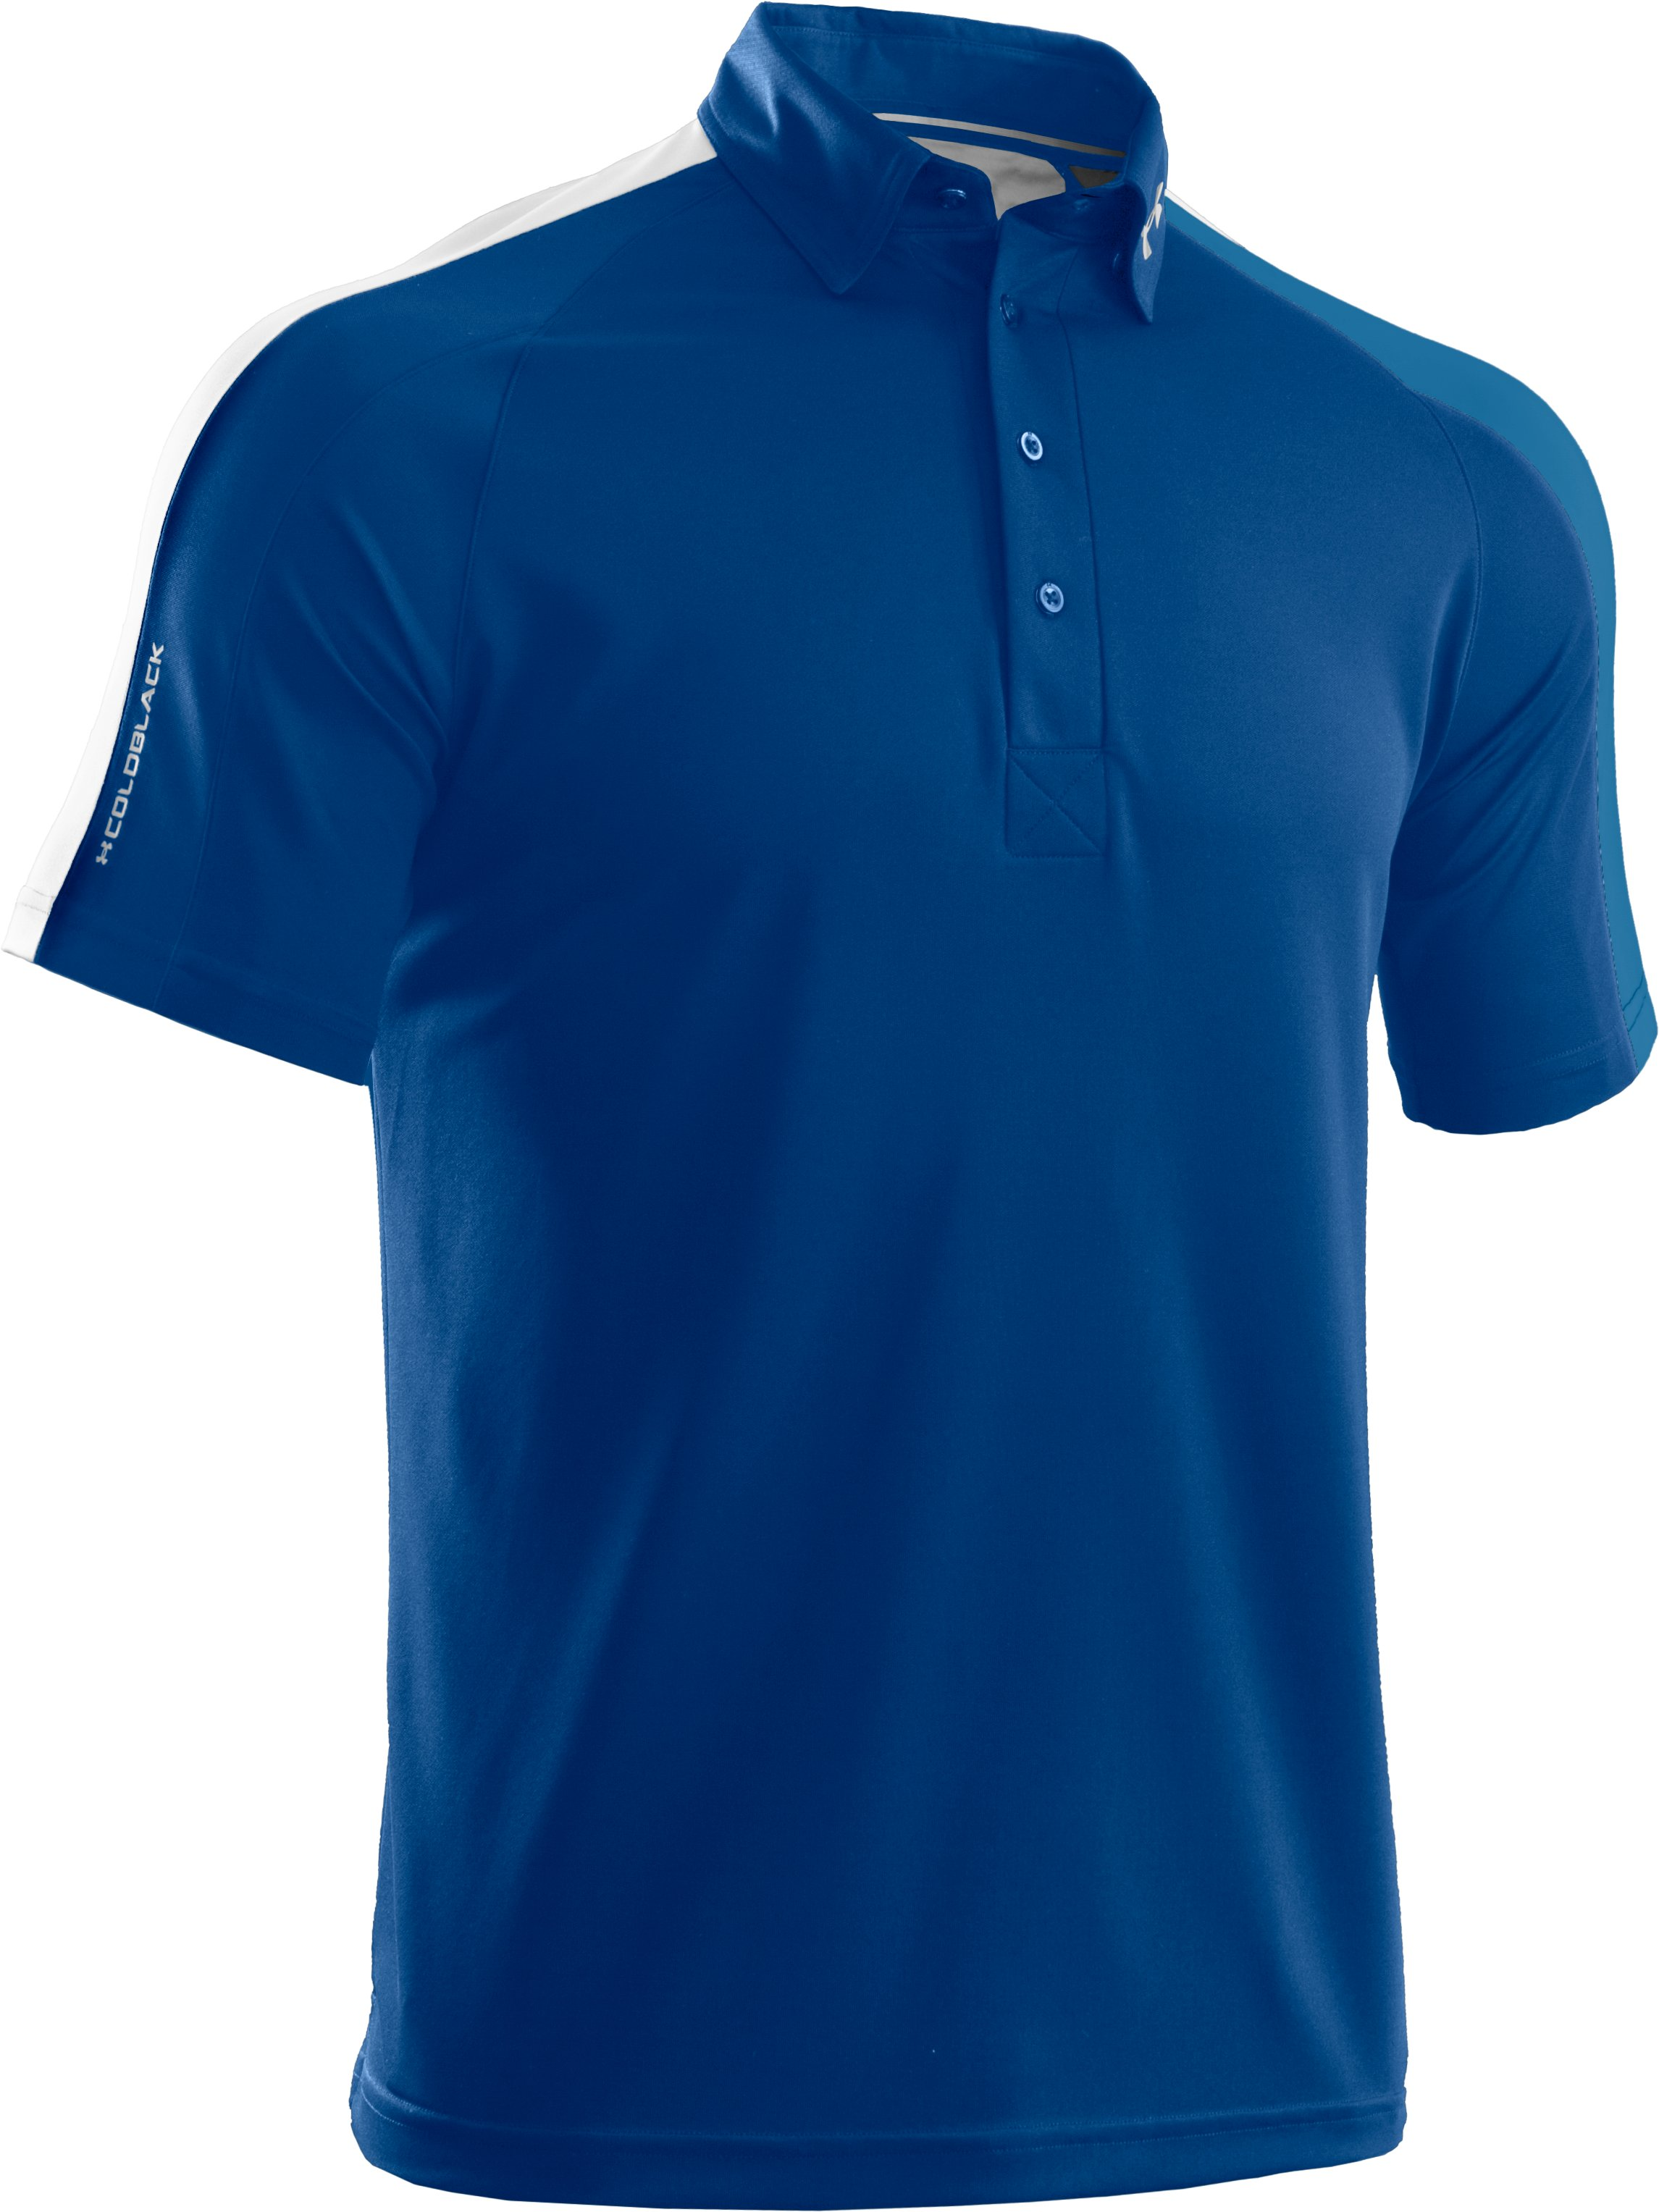 Men's coldblack® Colorblock Polo, EMPIRE BLUE